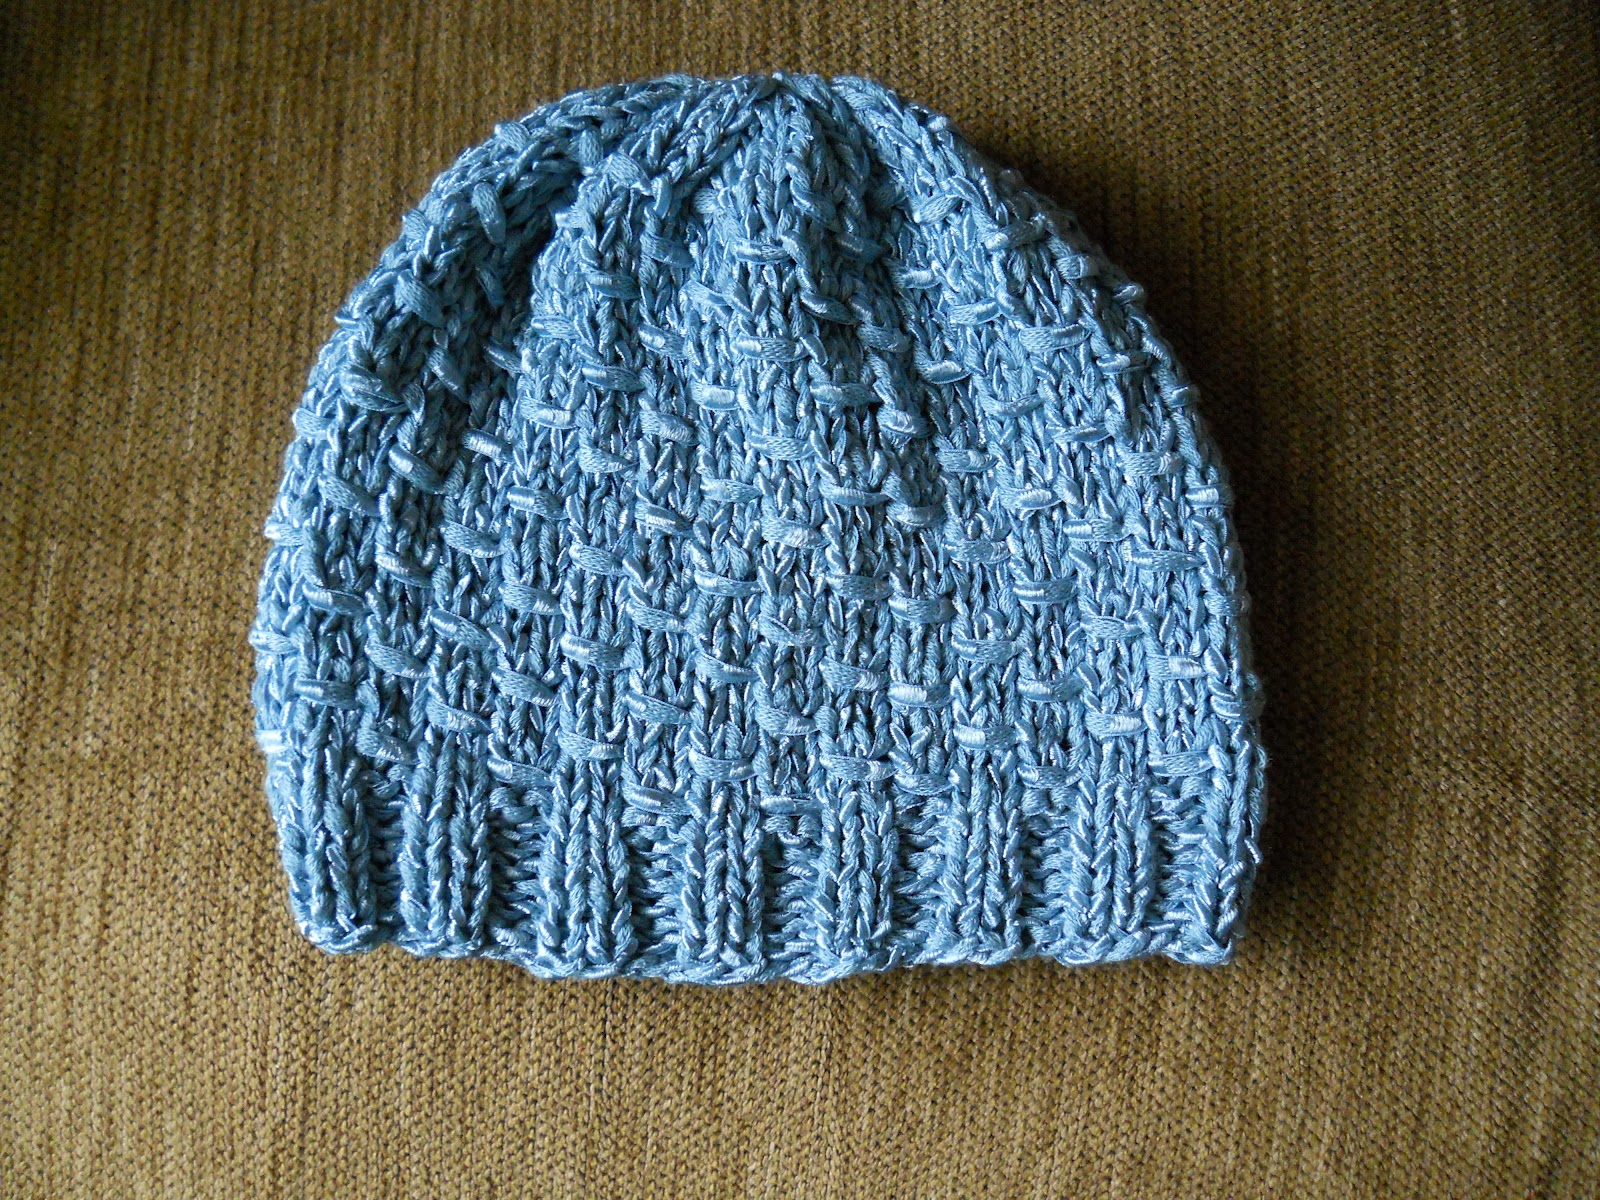 Knitting with Schnapps  Introducing the Armor of Hope Chemo Cap! 361dfd0f1d0